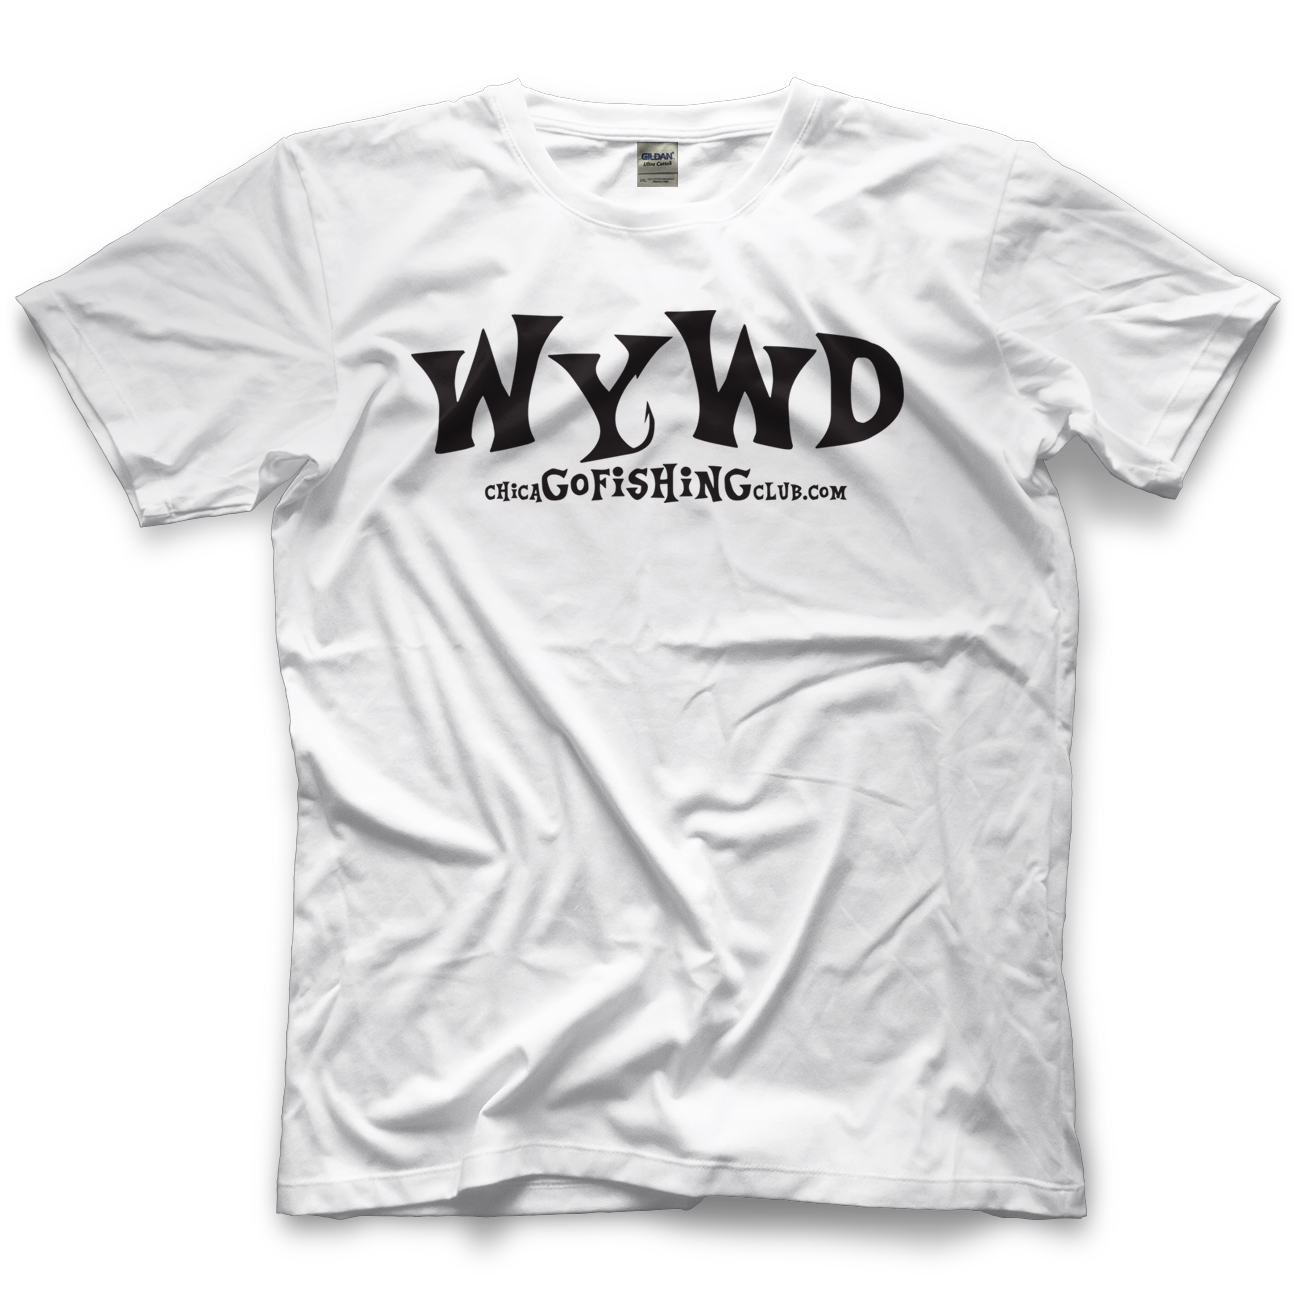 Chicago Fishing Club Original WYWD Light T-shirt